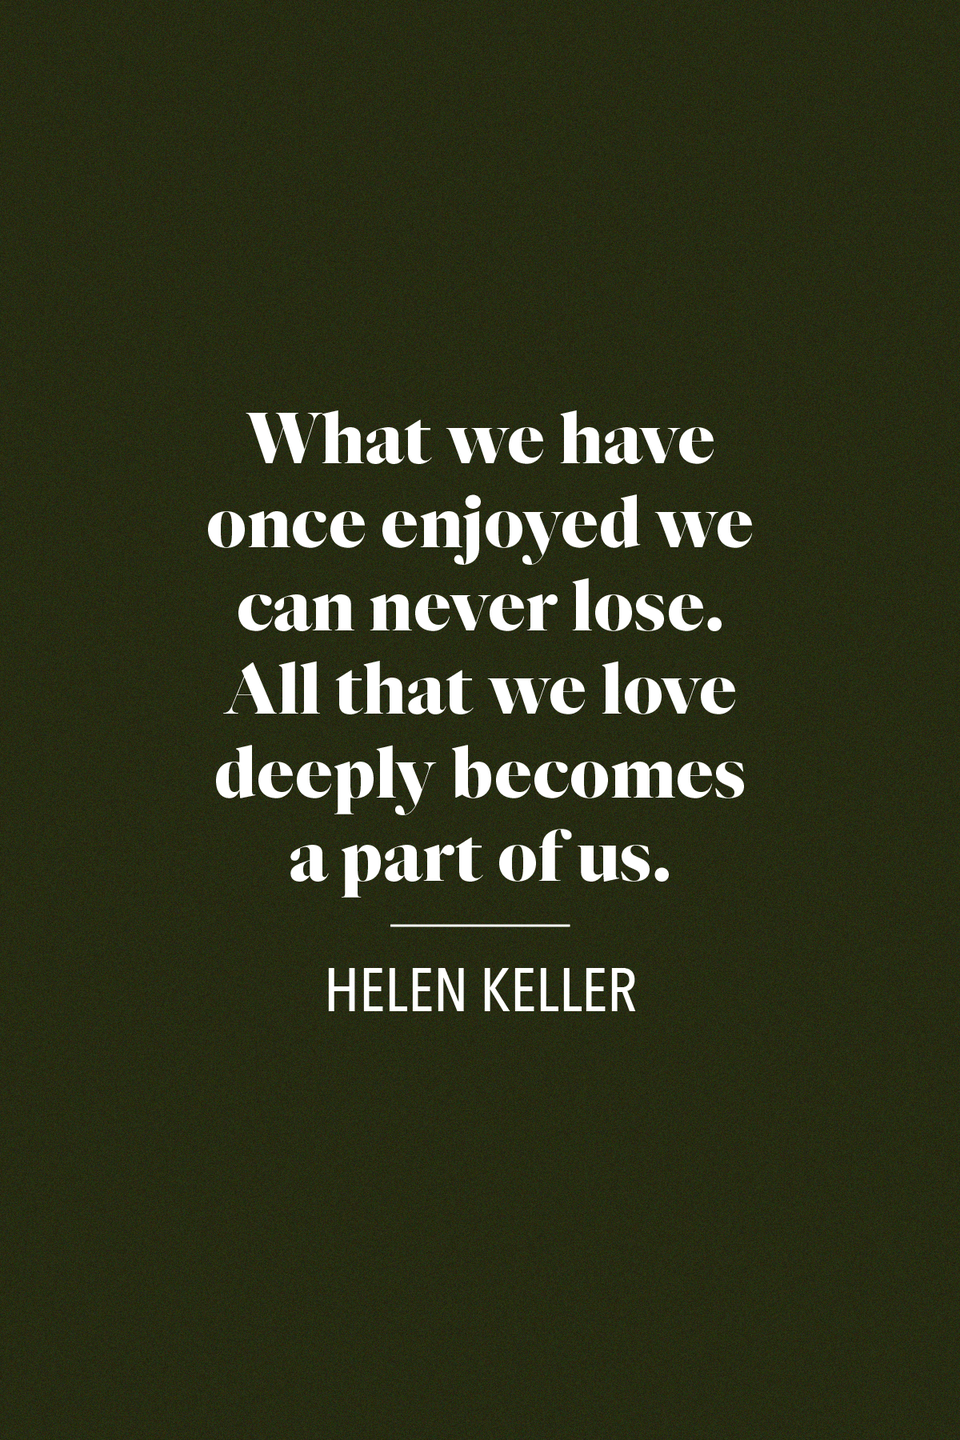 "<p>Helen Keller, a pioneering advocate for the deaf and blind, said ""What we have once enjoyed we can never lose. All that we love deeply becomes a part of us,"" in her book, <em><a href=""https://books.google.com/books/about/The_Open_Door.html?id=-WMIAQAAIAAJ"" rel=""nofollow noopener"" target=""_blank"" data-ylk=""slk:The Open Door"" class=""link rapid-noclick-resp"">The Open Door</a></em>.</p>"